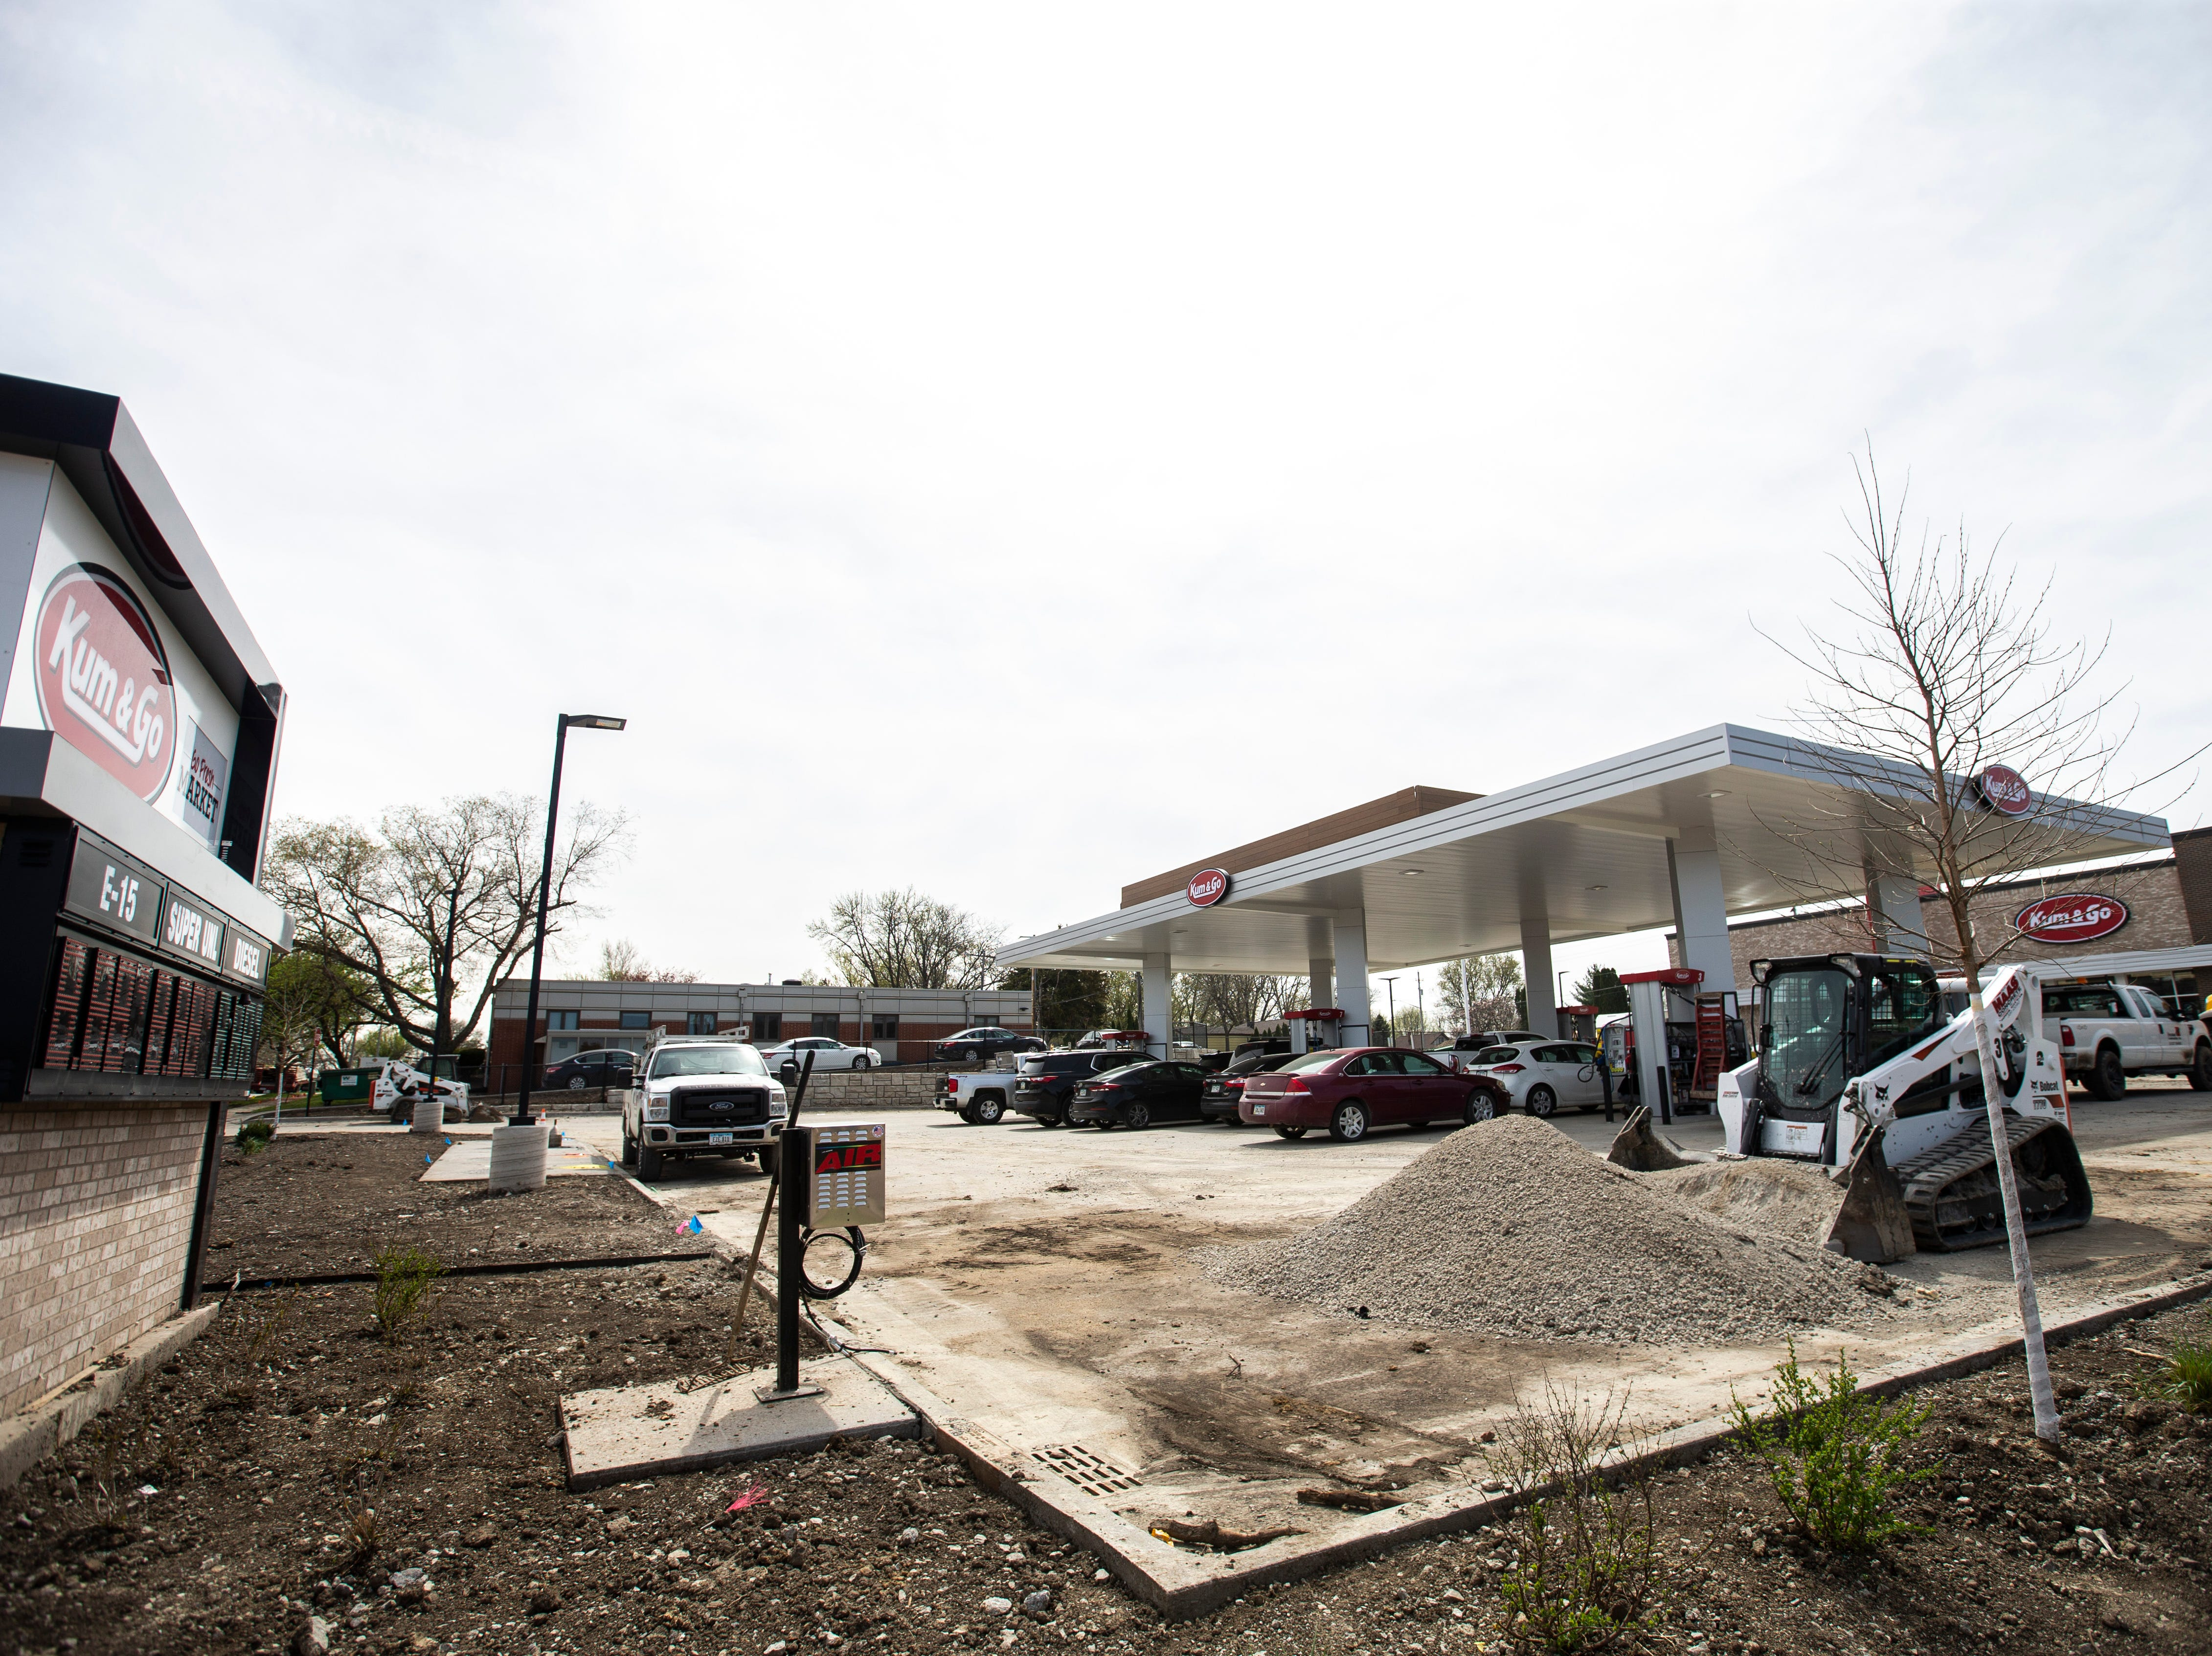 Construction nears competition, Tuesday, April 23, 2019, at a new Kum & Go location on the corner of Muscatine and First Avenues on the east side of Iowa City, Iowa.